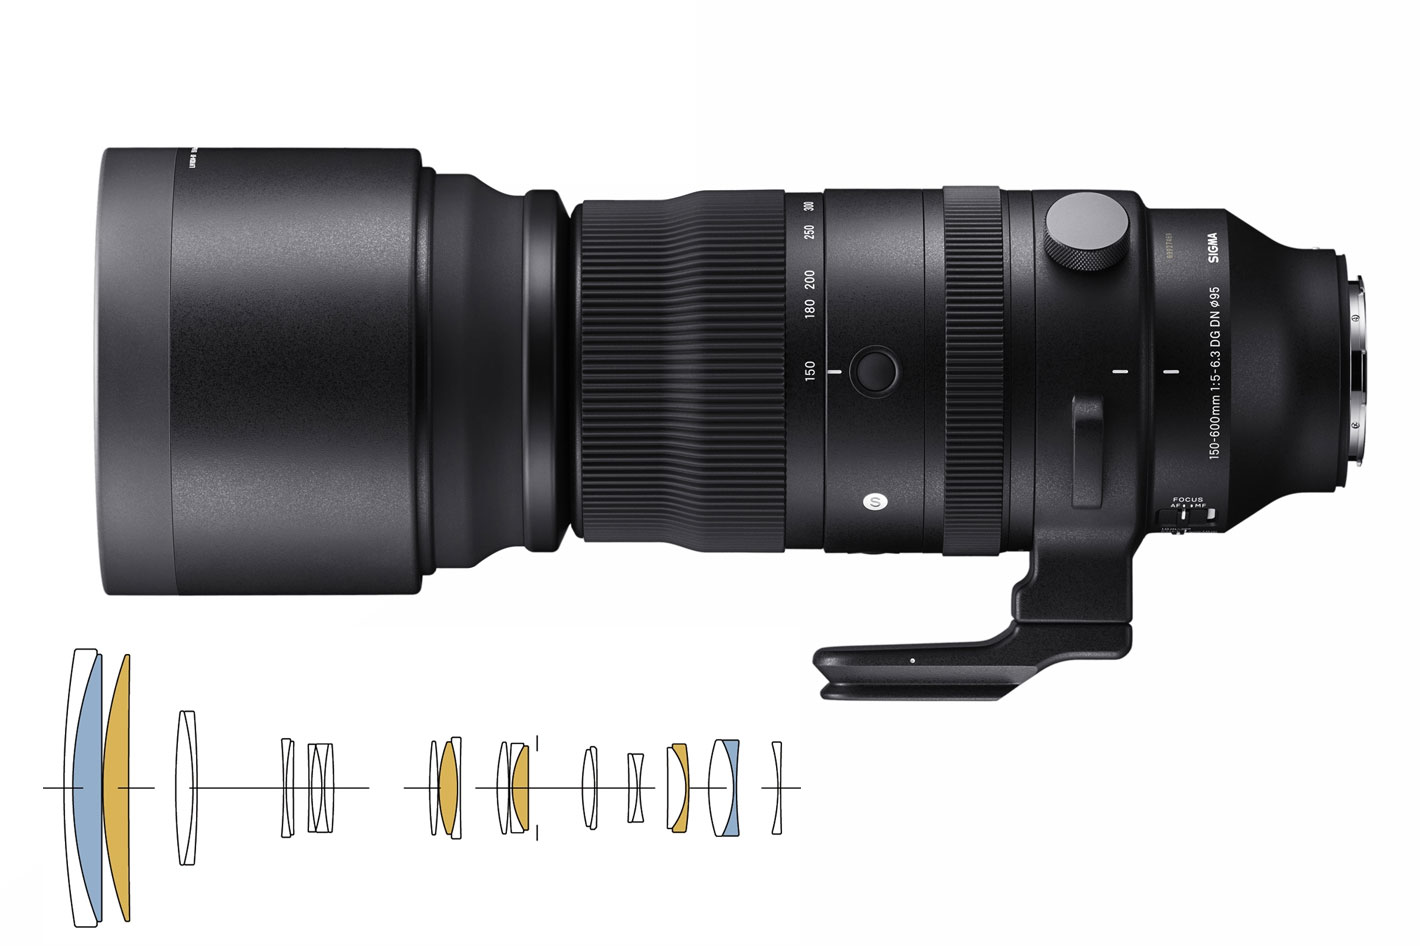 SIGMA 150-600mm: a first ever Sports lens for mirrorless systems